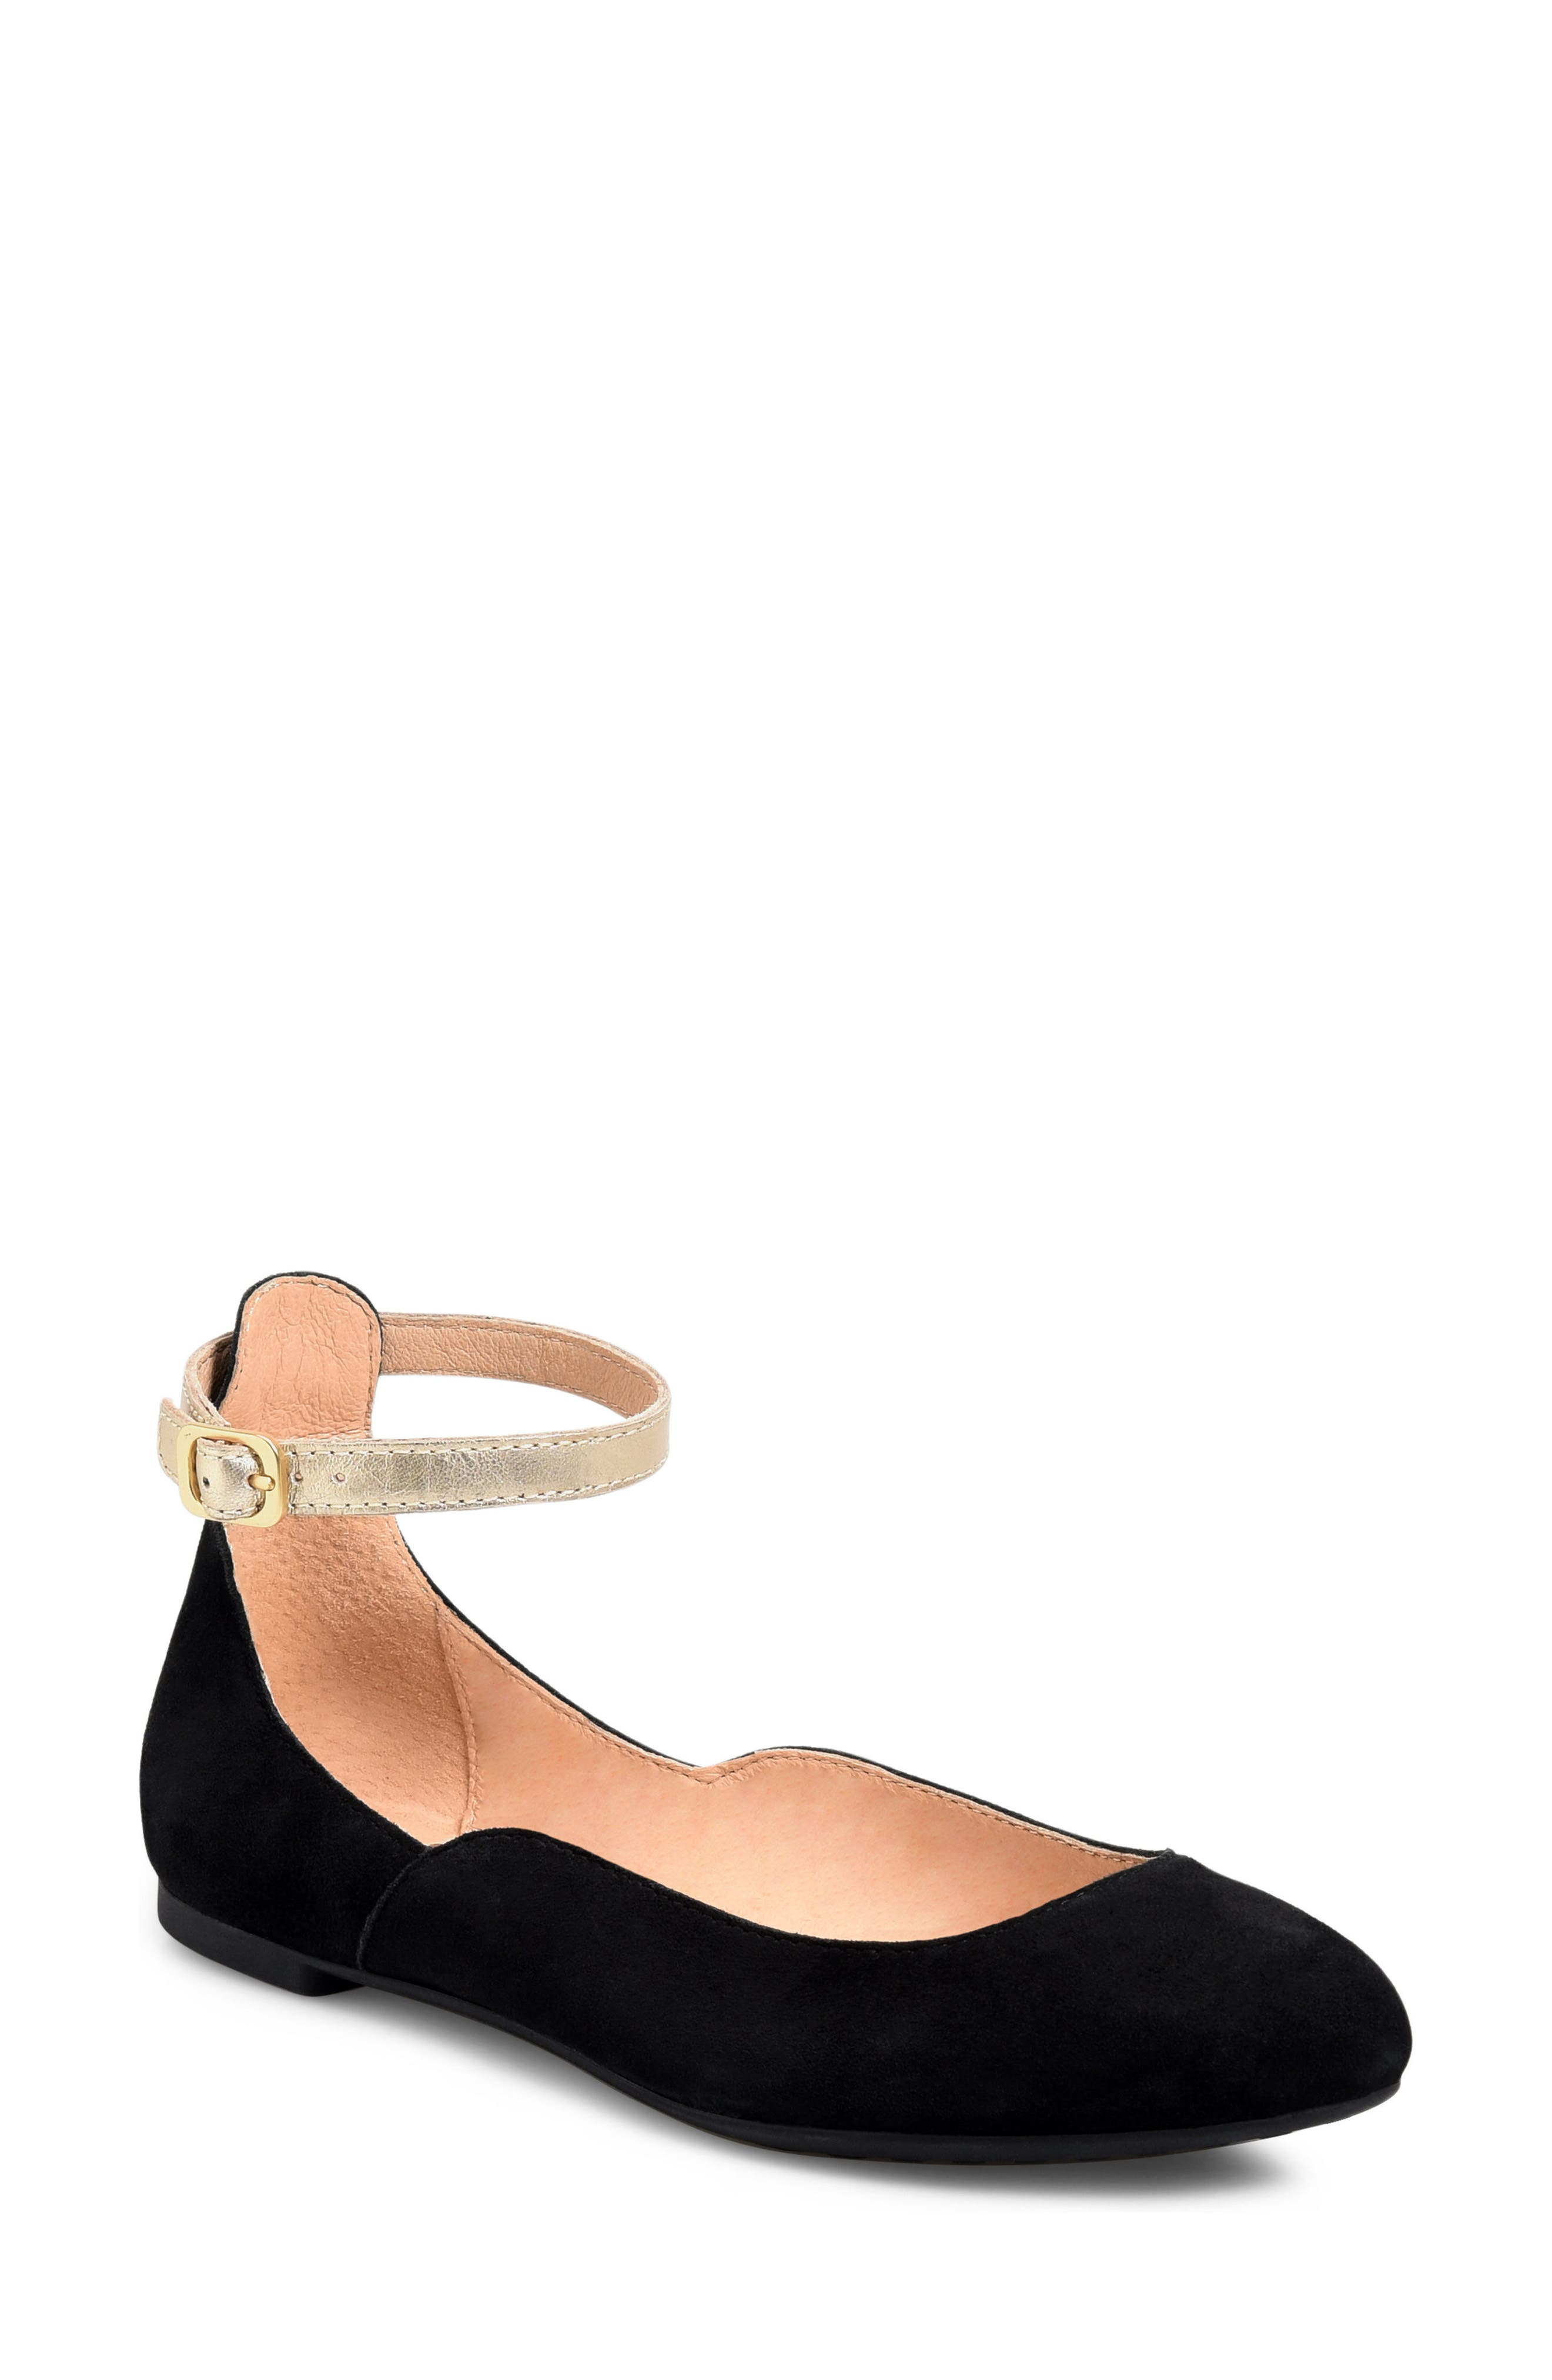 Luchia Ankle Strap Flat,                             Main thumbnail 1, color,                             BLACK/ GOLD LEATHER